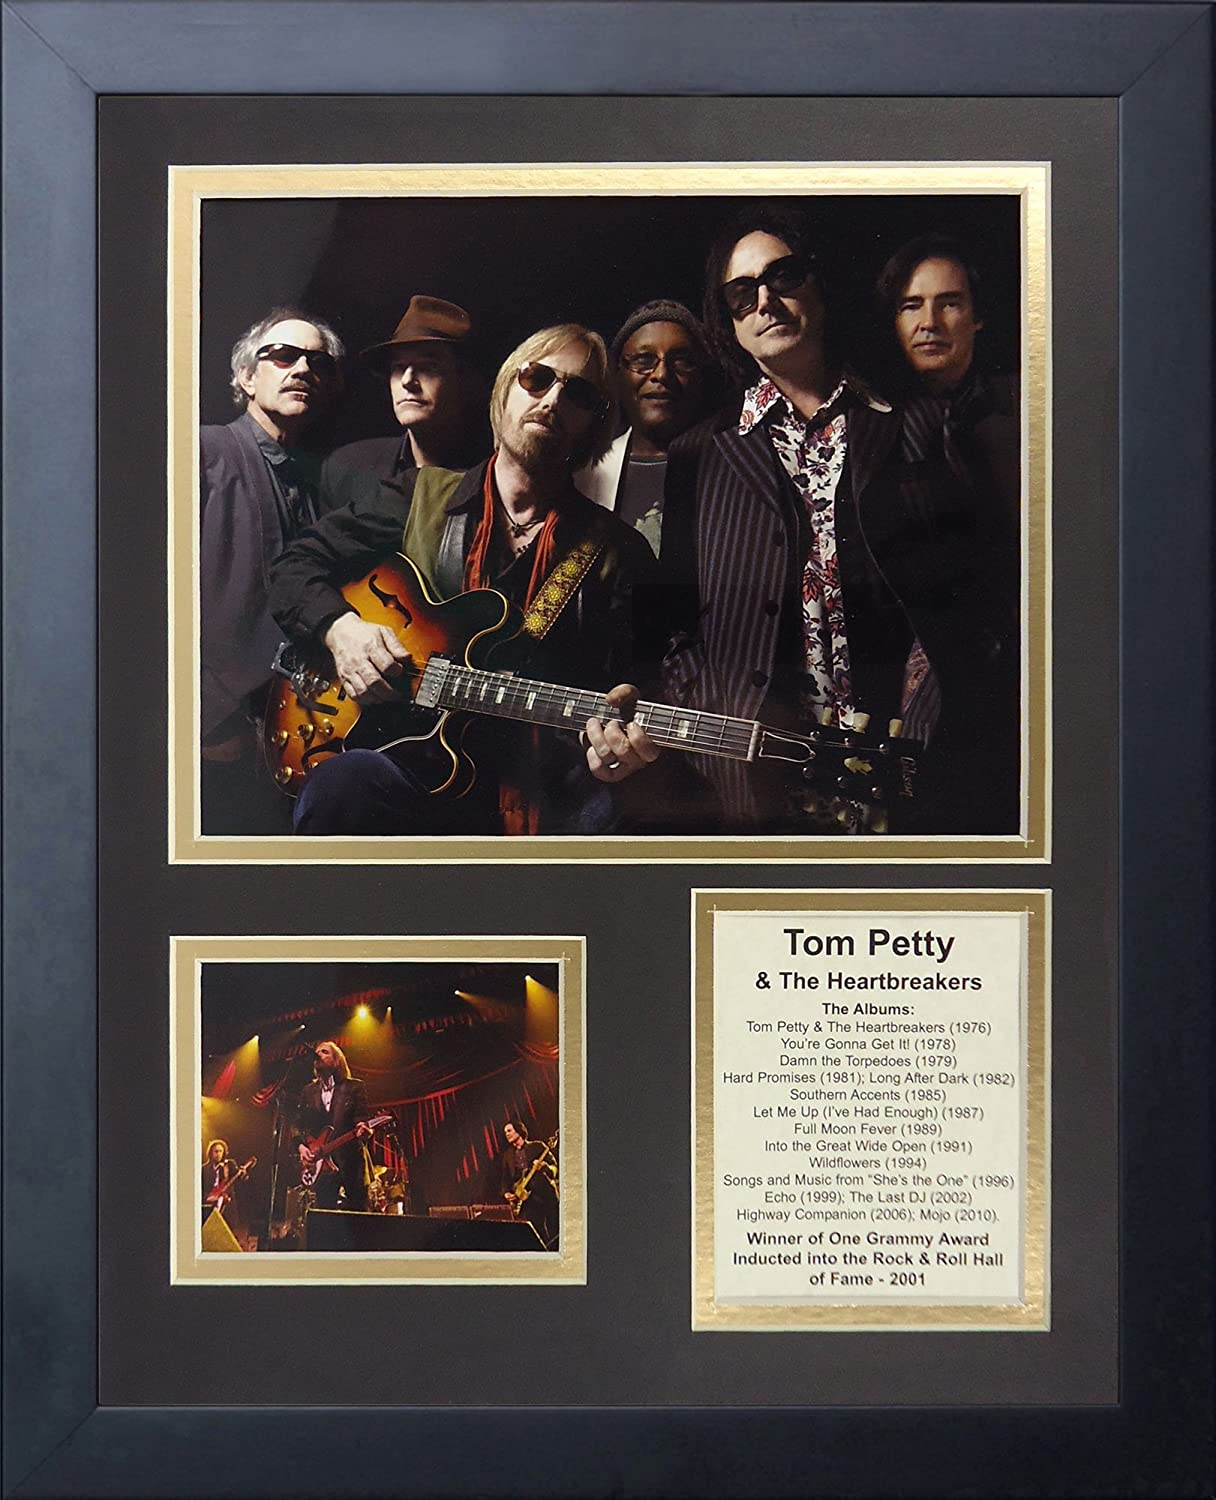 """Legends Never Die Tom Petty and The Heartbreakers Collectible, Framed Photo Collage Wall Art Decor - 12""""x15"""" (46075U)"""